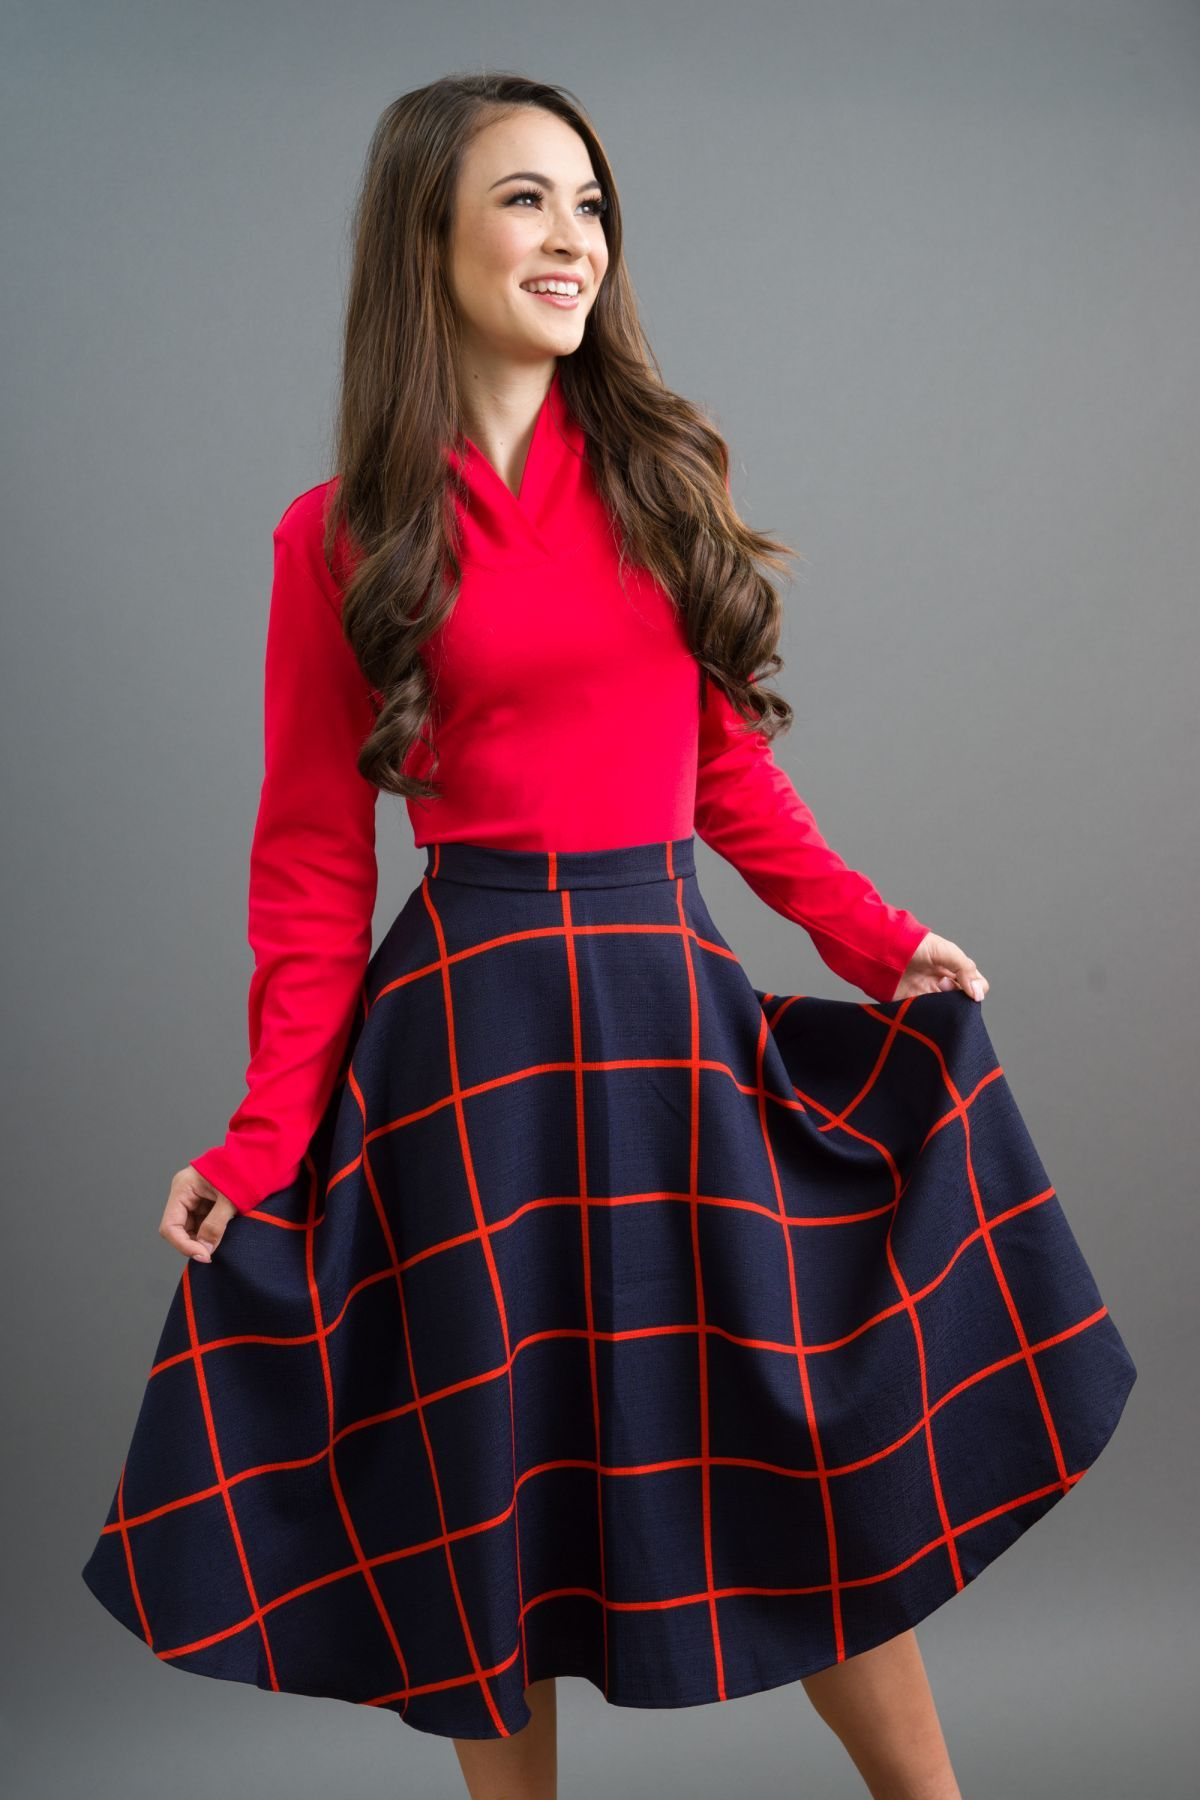 3d99cd63468d Love Love Love this skirt. Its lightweight poly crepe fabric Swing design,  side zip, Not quite midi below the knee length. We have paired each color  with a ...